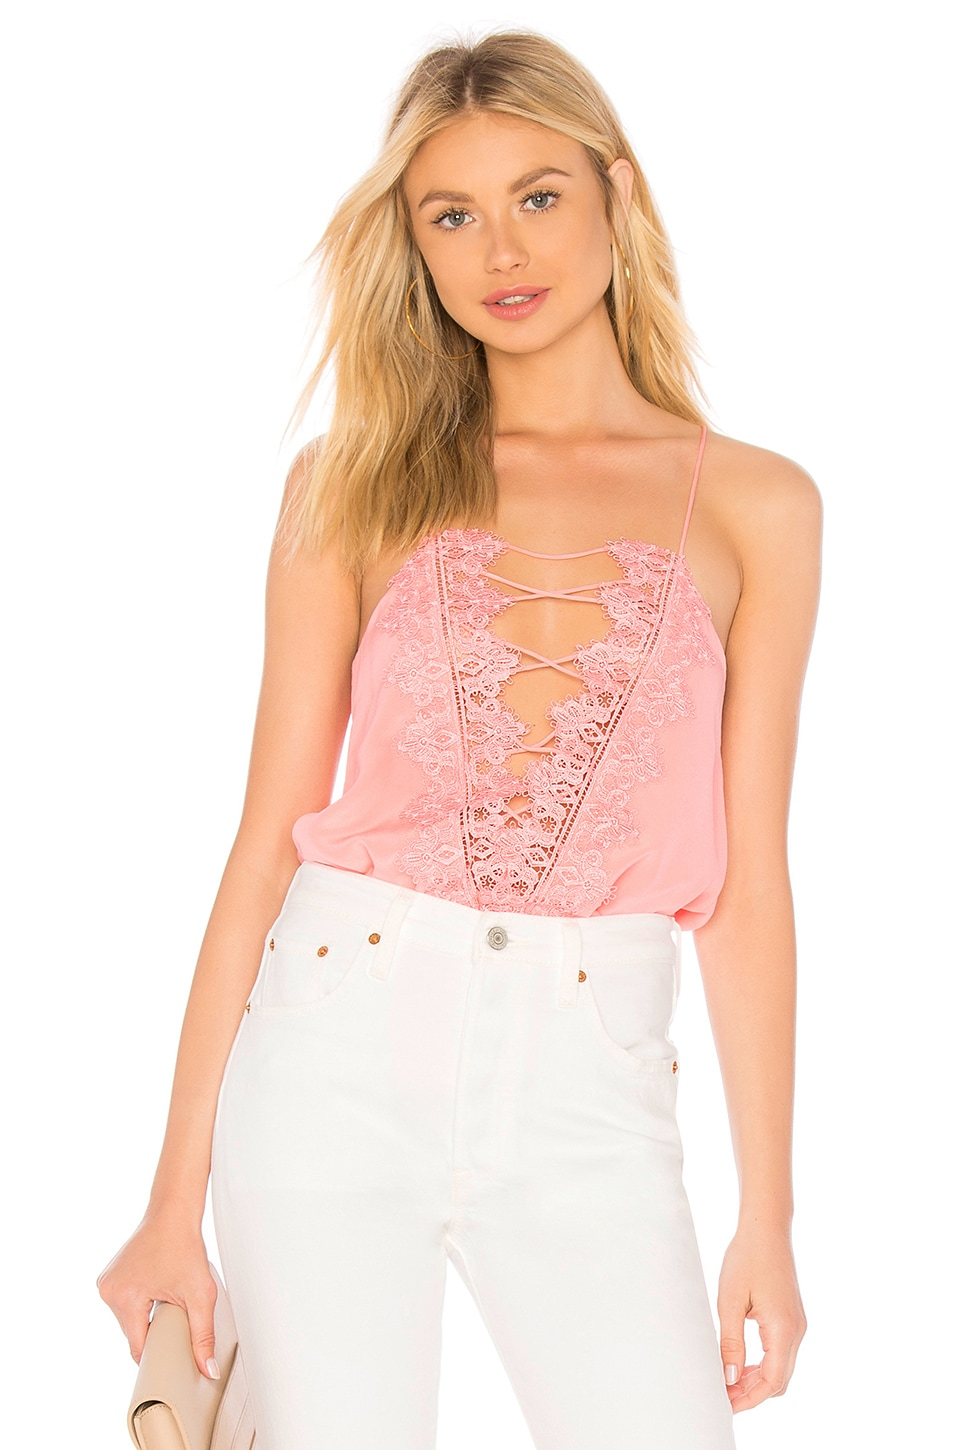 CAMI NYC The Charlie CDC Cami in Peony